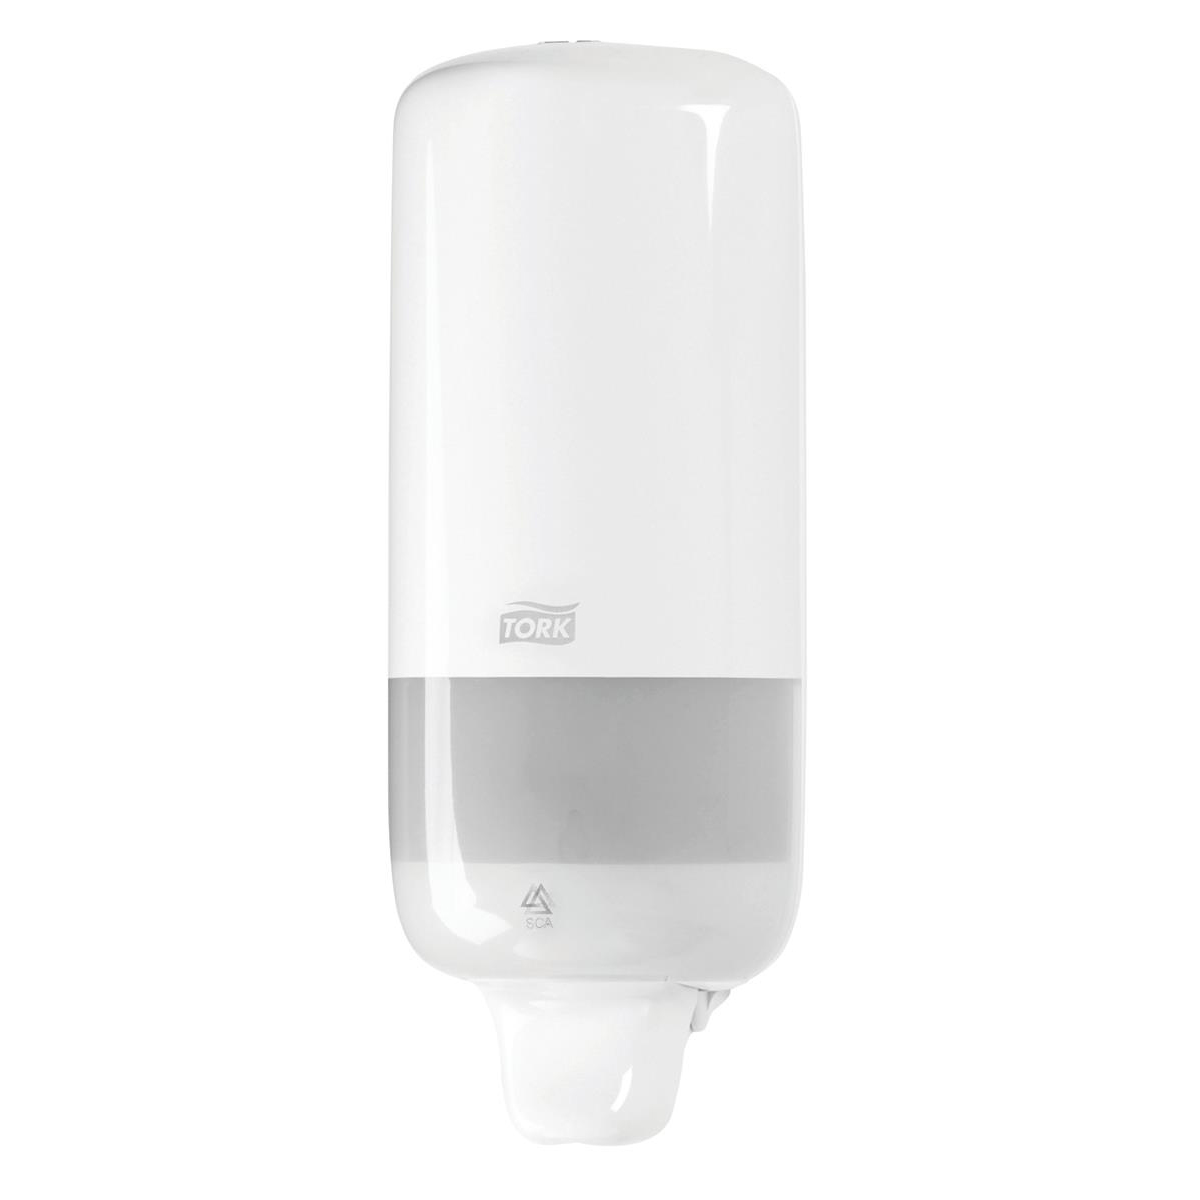 Tork Liquid Soap Dispenser White Ref 560000